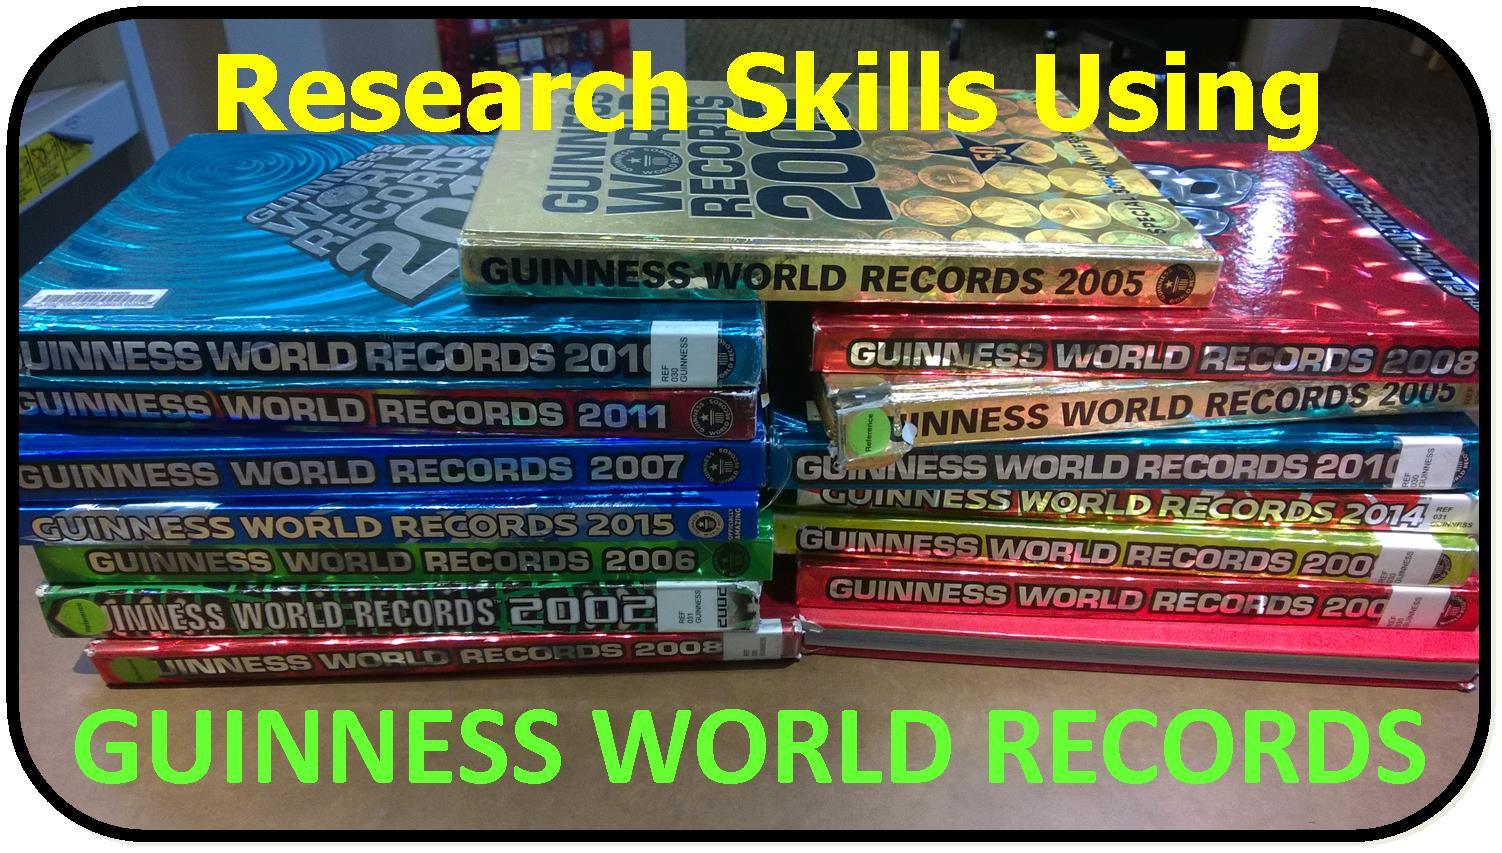 guinness book of world records 2010 pdf download